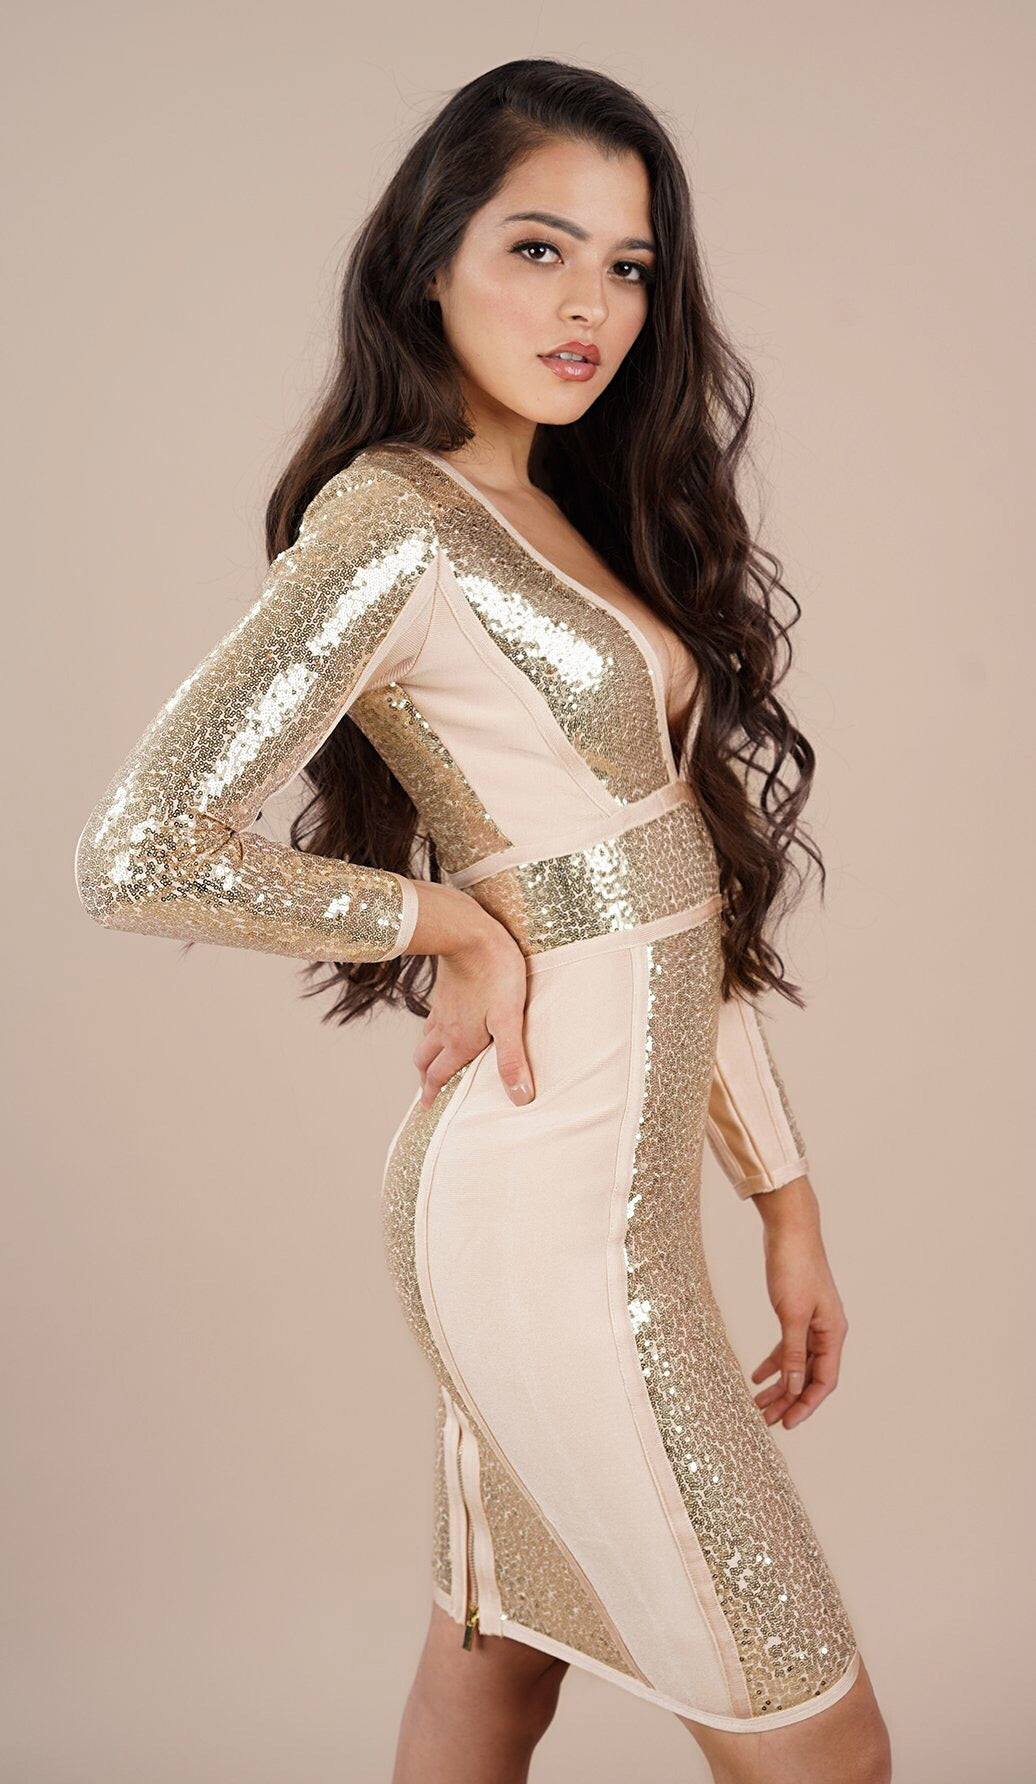 'JESSA' Sequin Bodycon Dress - GLAMBAE FASHION